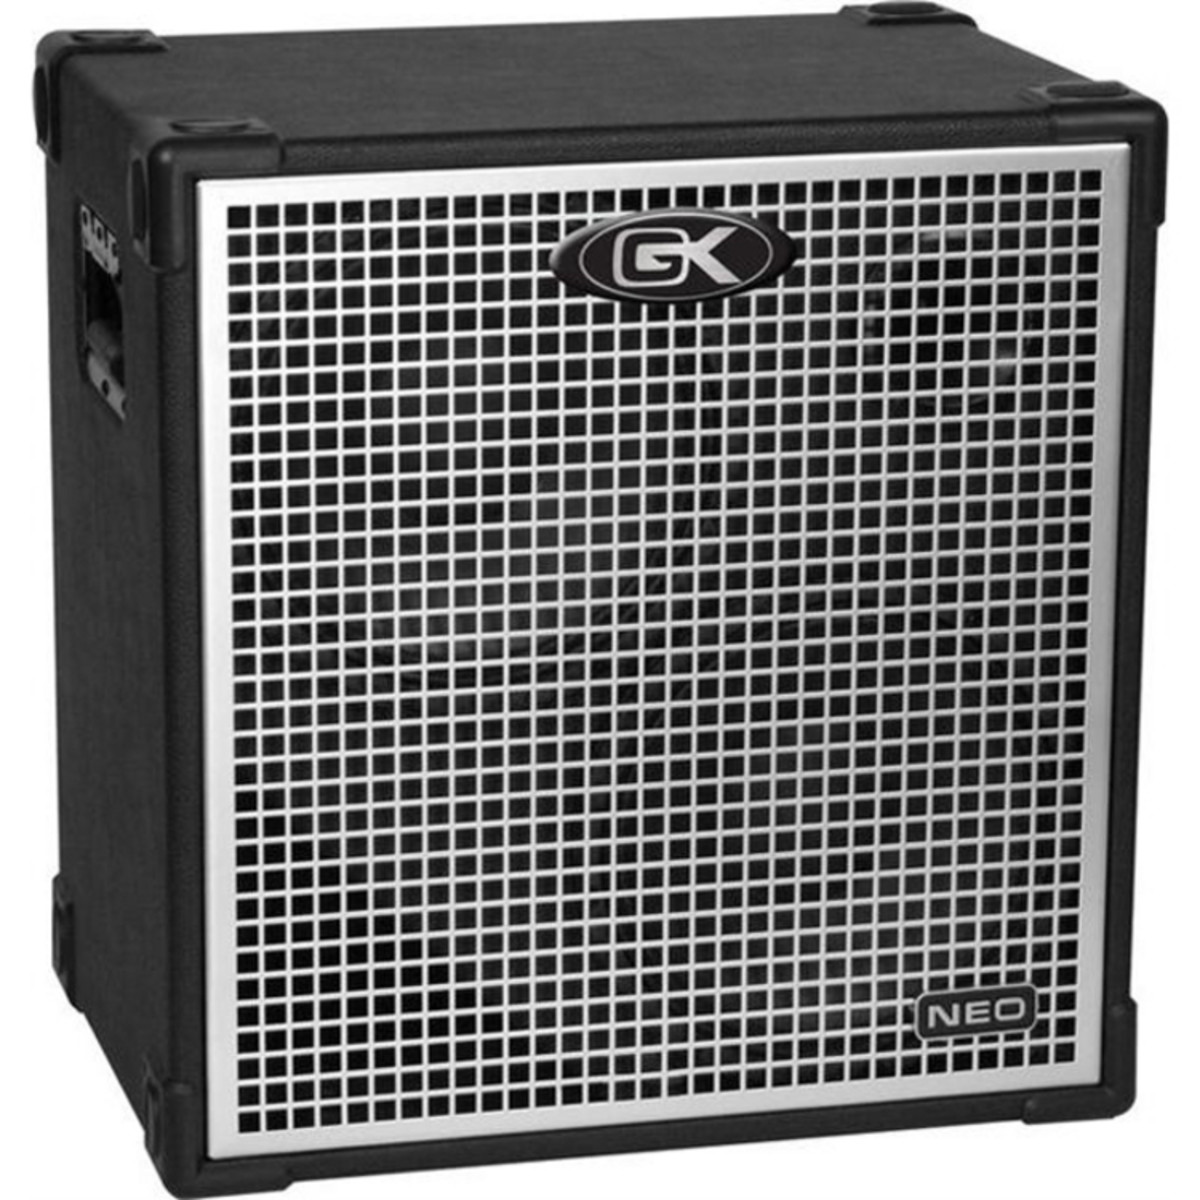 Click to view product details and reviews for Gallien Krueger Neo 212 Ii 8ohm Bass Cab.